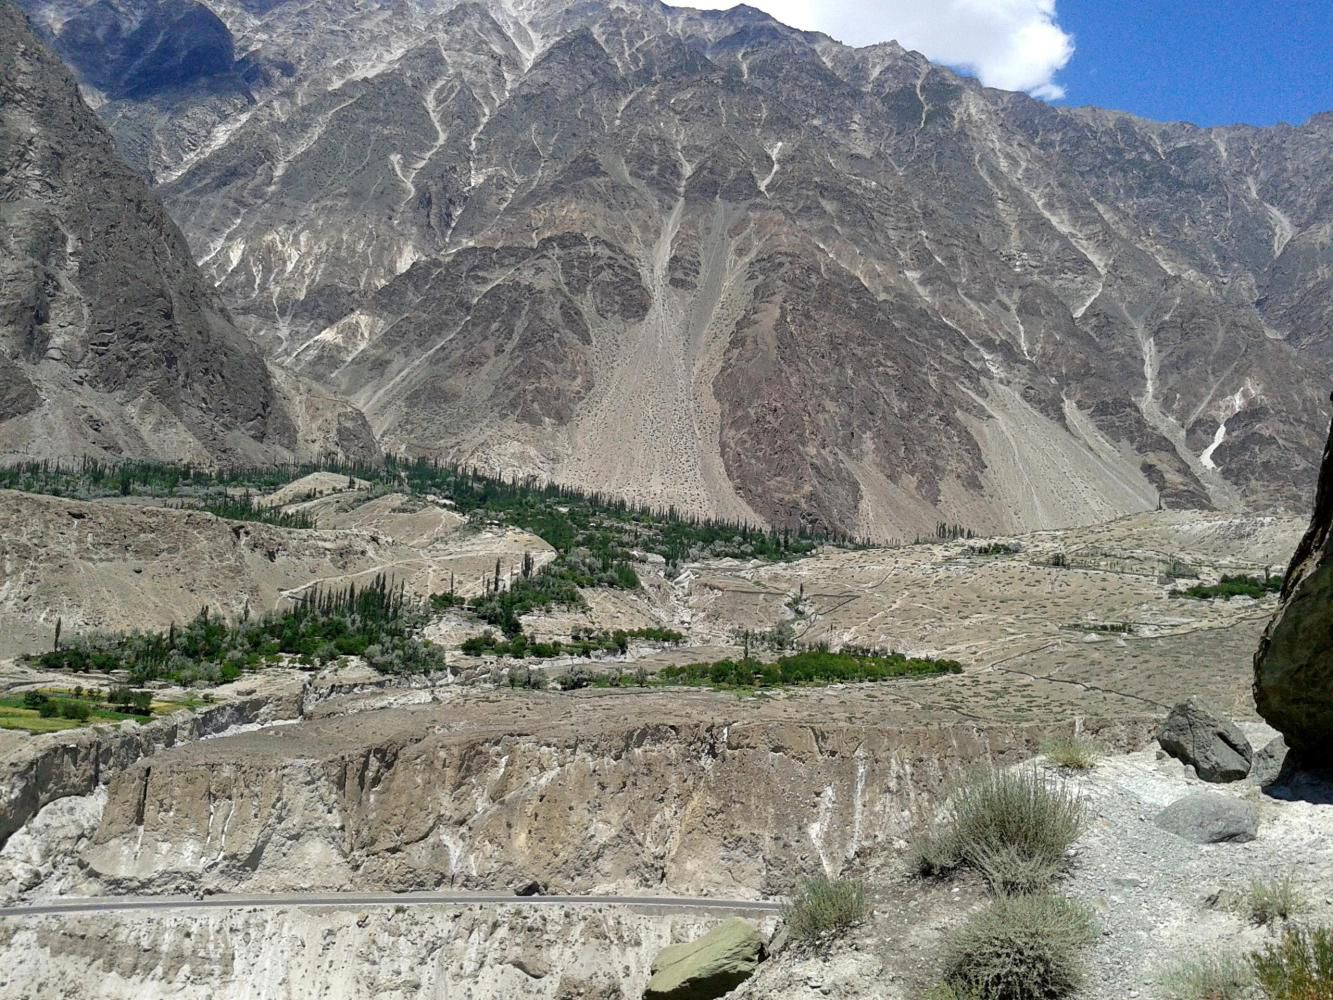 View towards Hunza from Pissan-Nagar